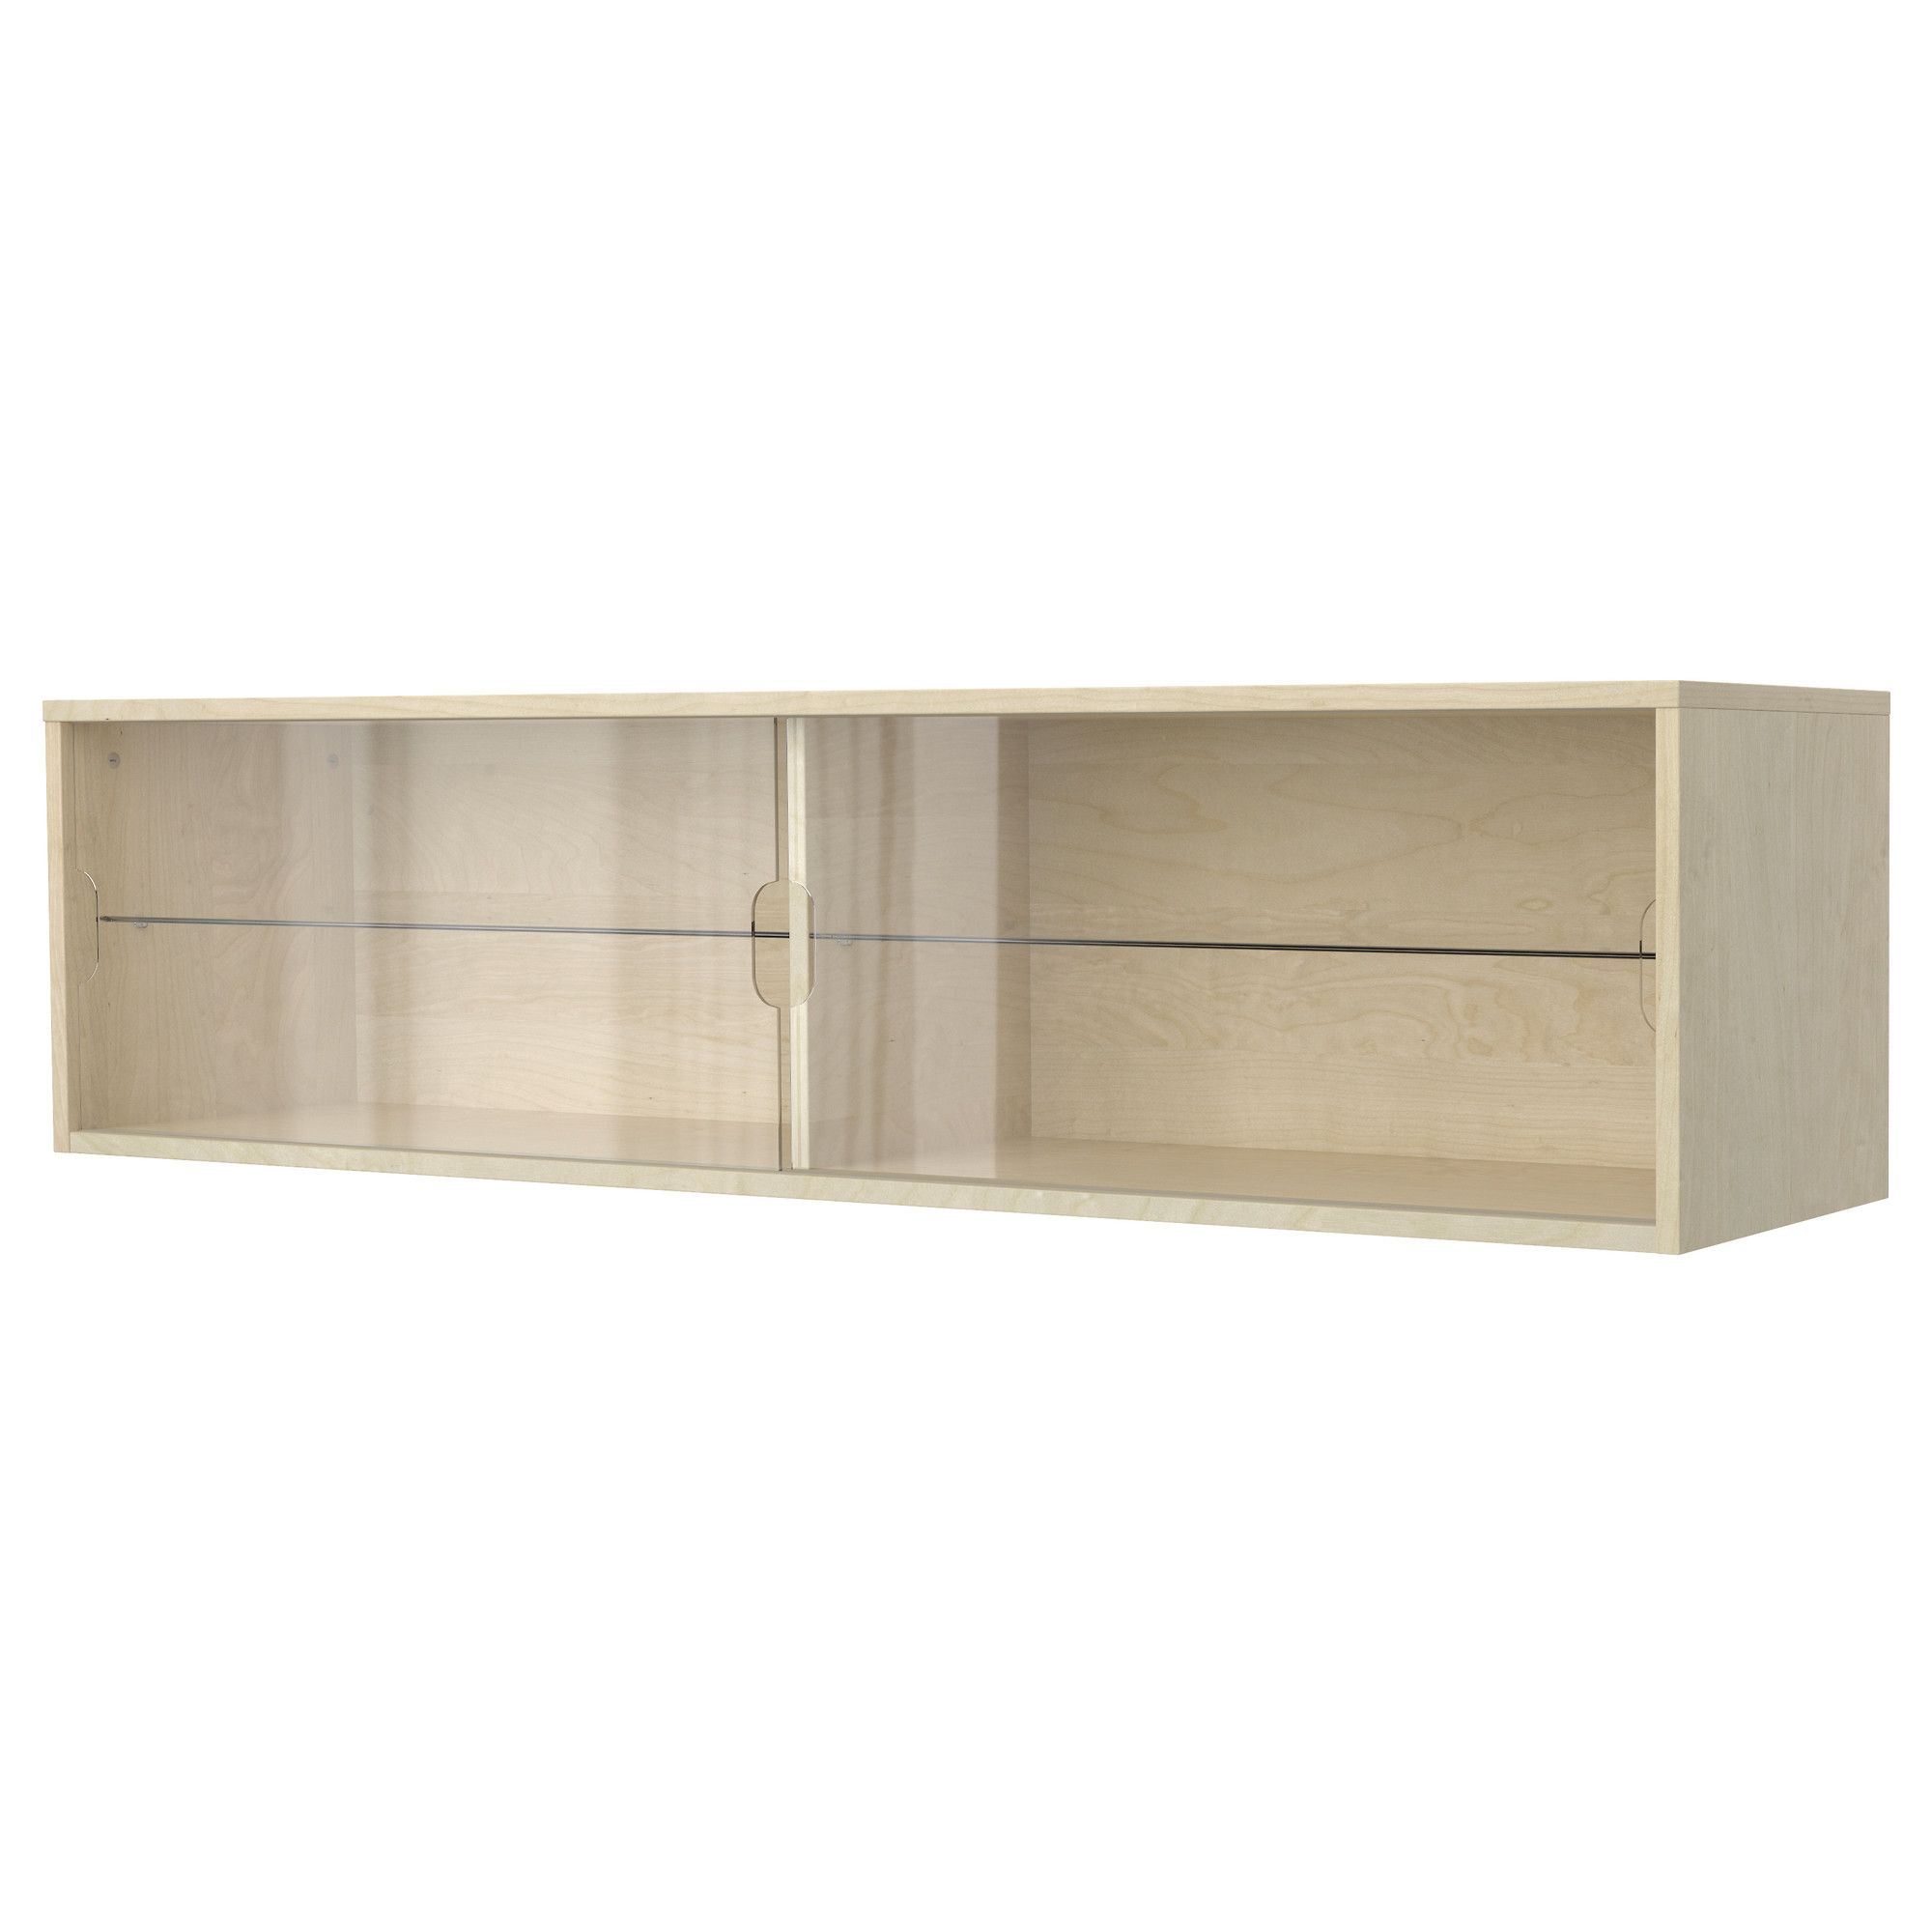 Kitchen Cabinet Warranty Ikea 169 00 It Goes In The Wall Galant Wall Cabinet With